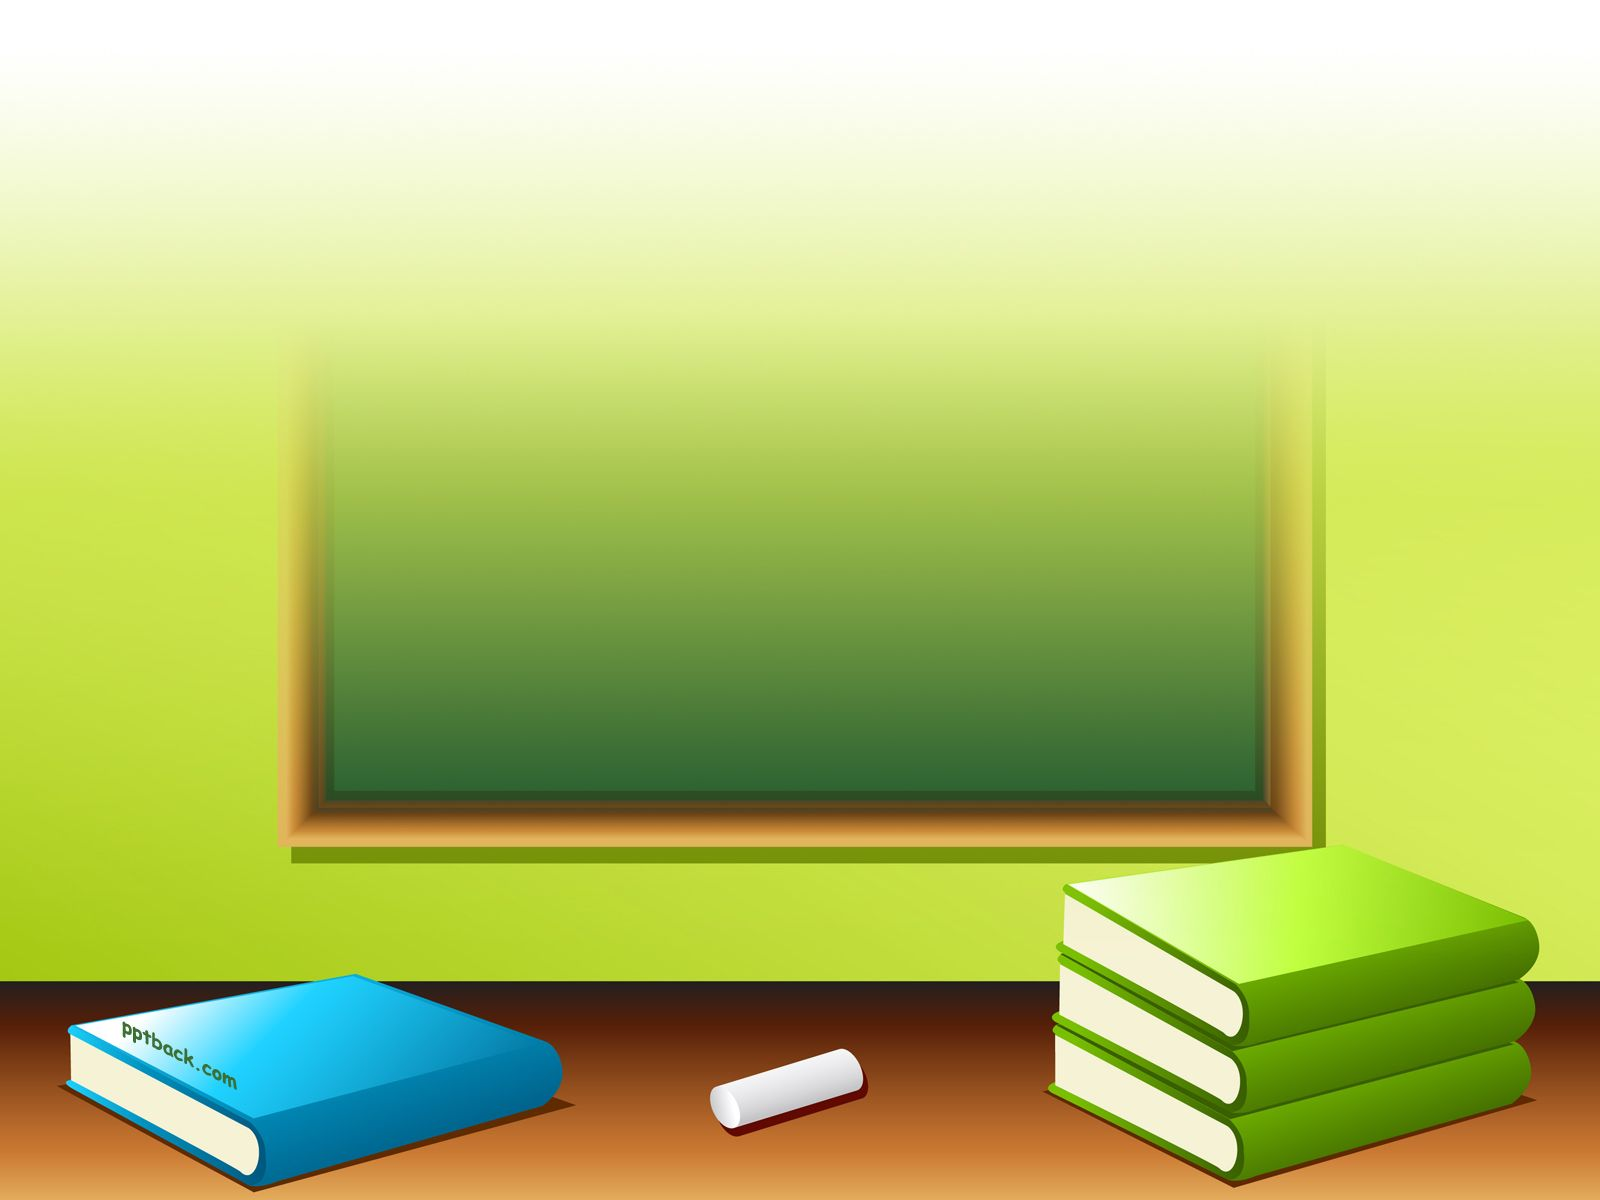 Books and pencils back to school ppt backgrounds powerpoint ppt books and pencils back to school ppt backgrounds powerpoint toneelgroepblik Gallery